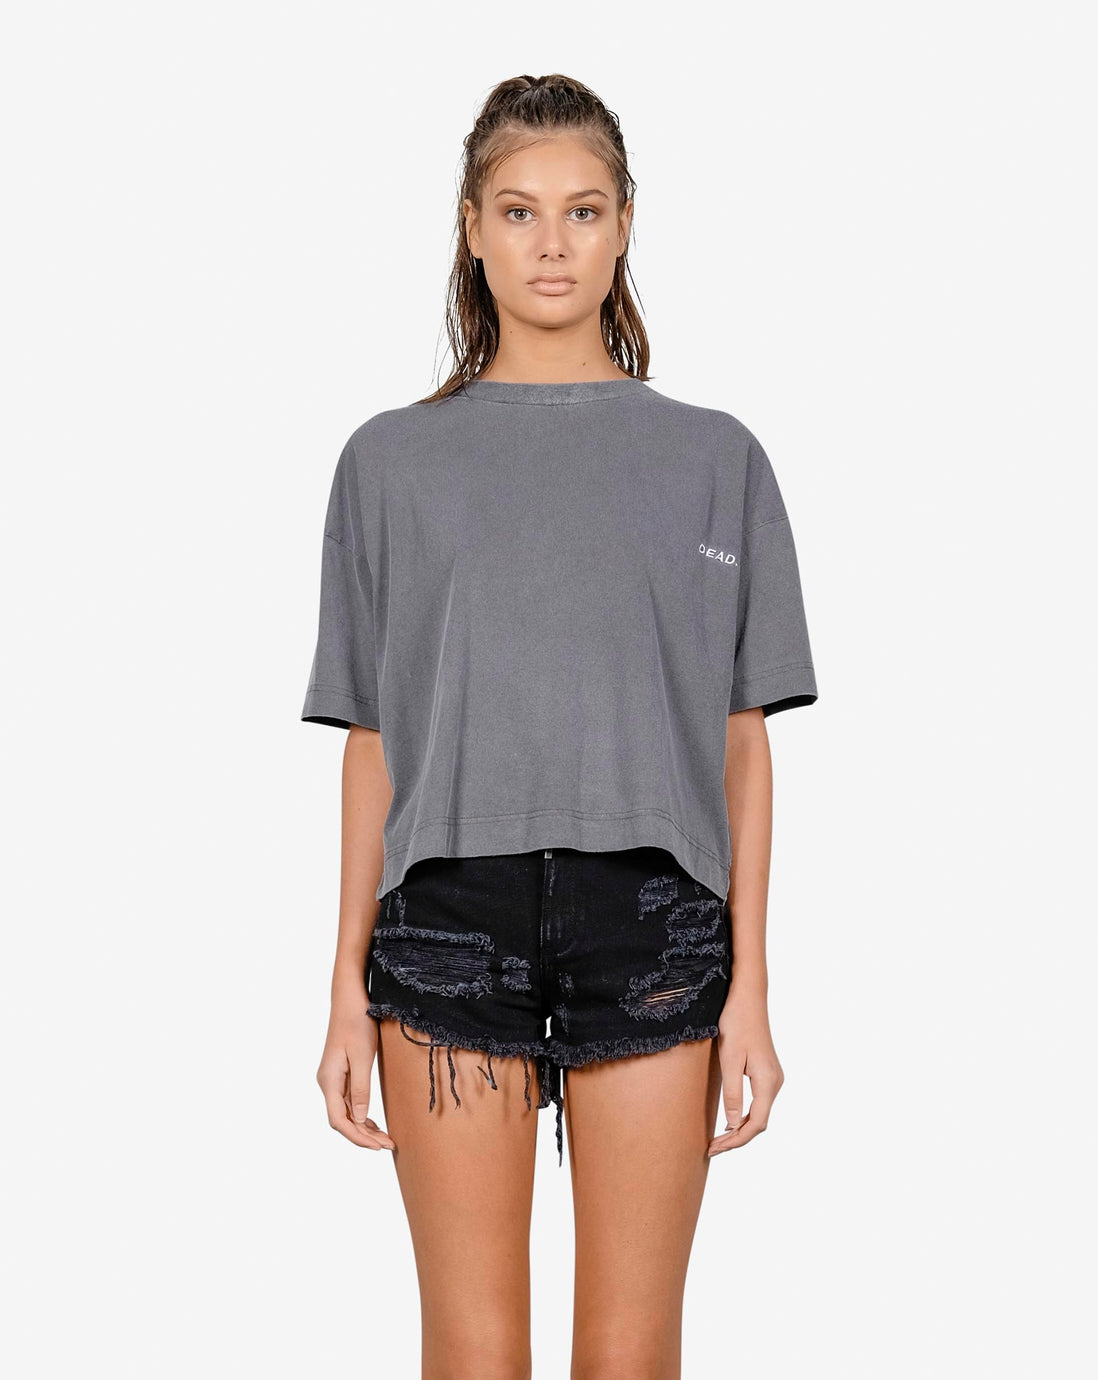 CALI CROP TEE - GREY